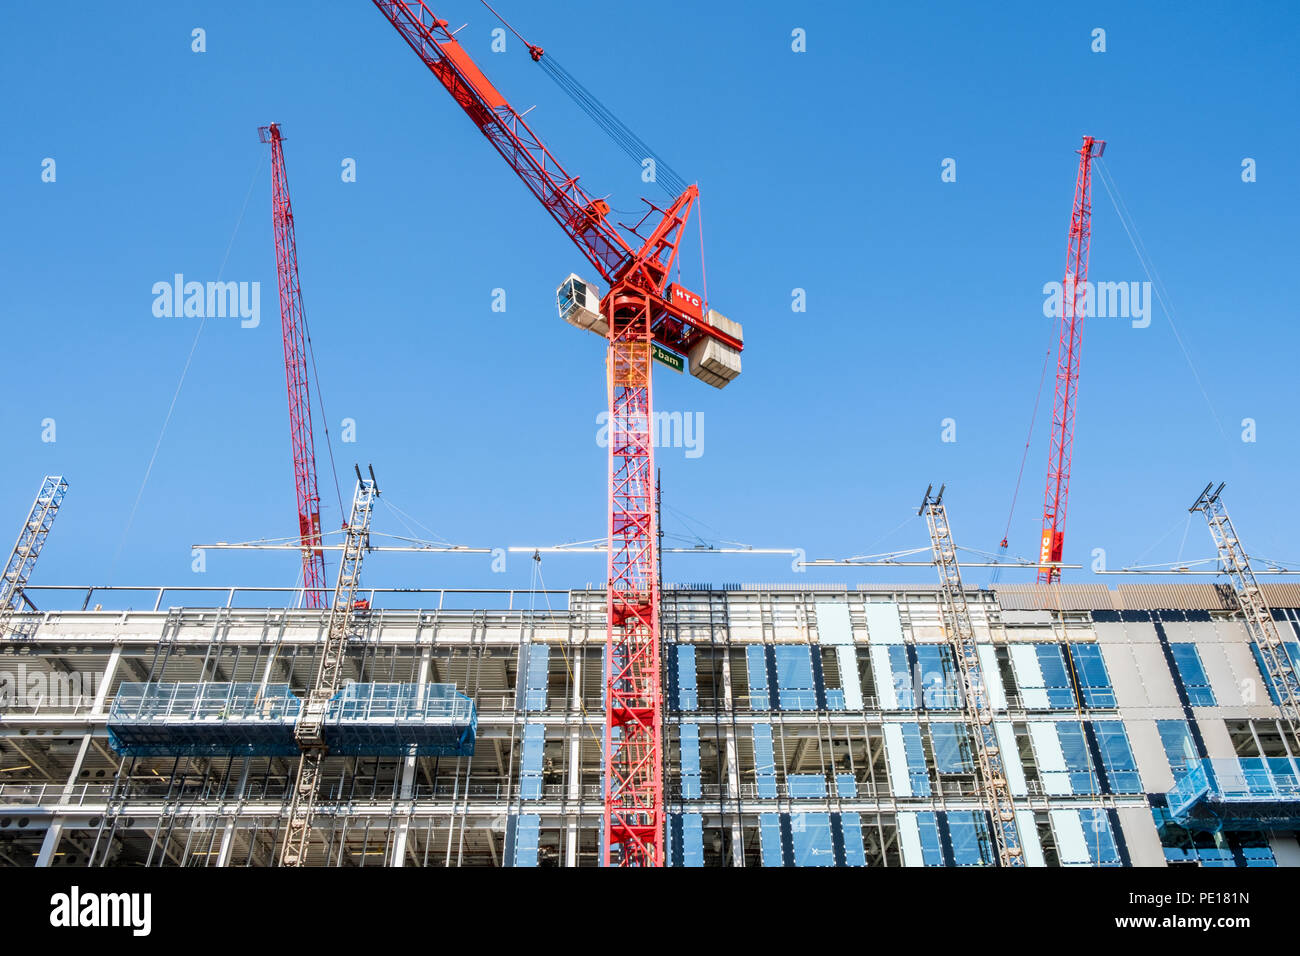 Tower cranes alongside new high rise building at a construction site, Sheffield, England, UK - Stock Image